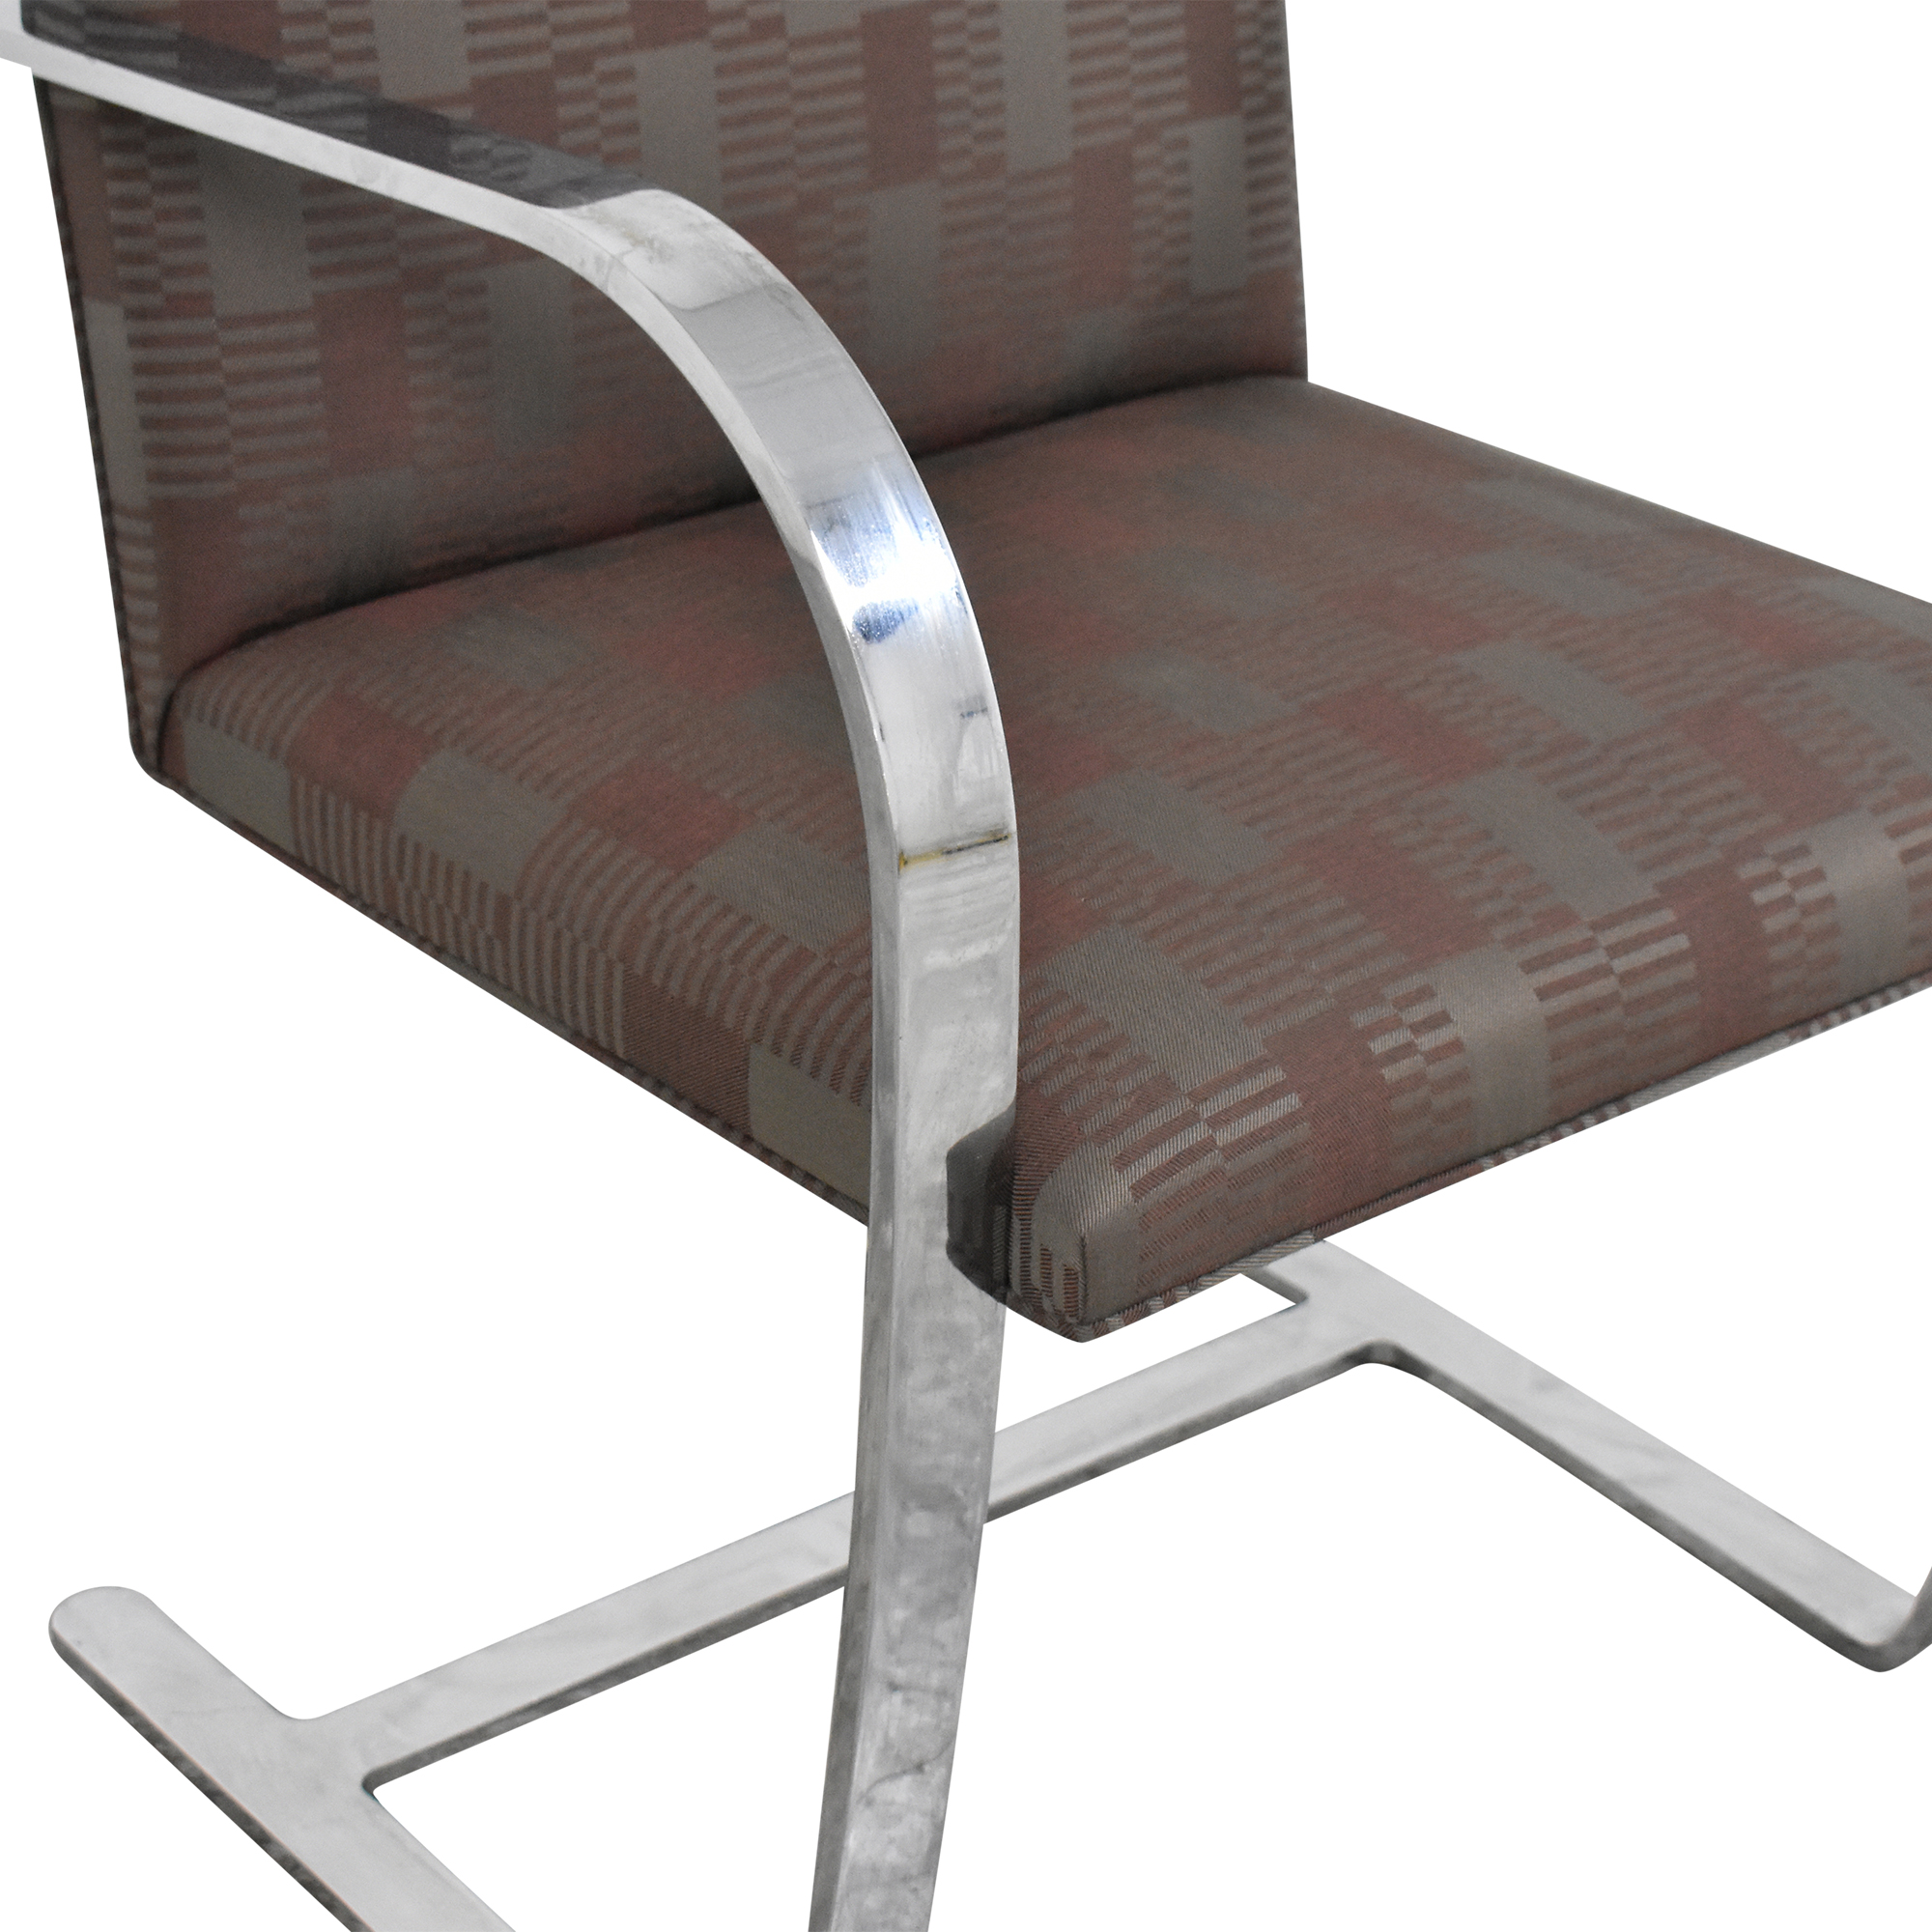 Flat Bar Brno-Style Chair for sale